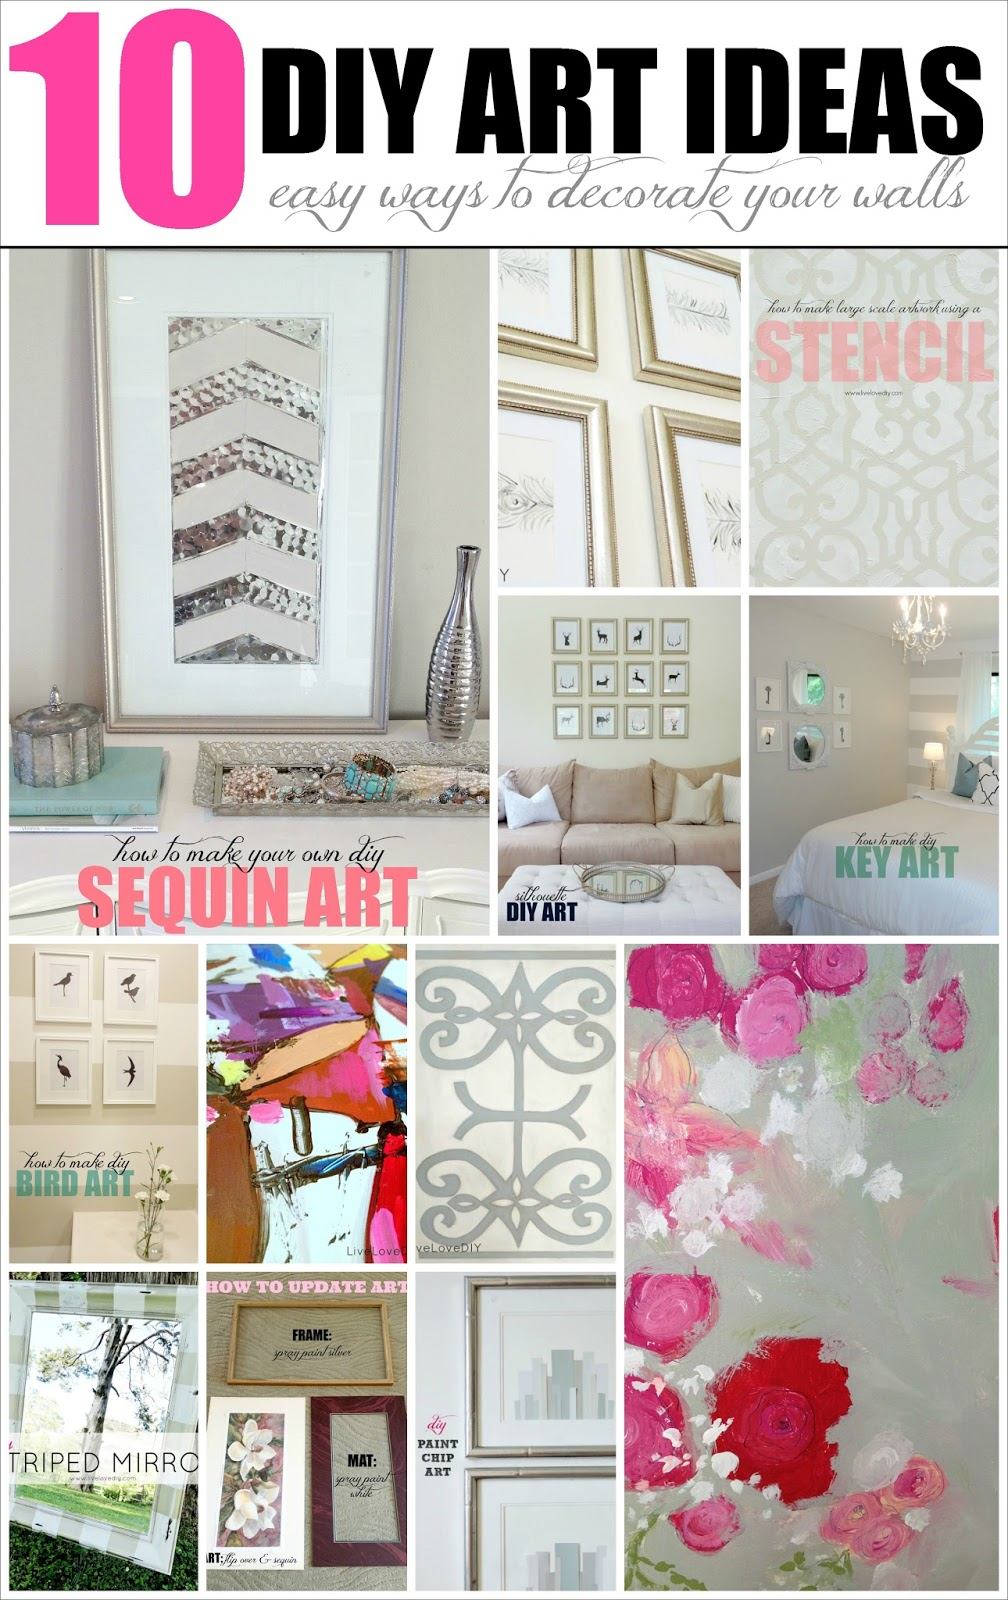 Livelovediy 10 diy art ideas easy ways to decorate your walls - Wall decor diy ...